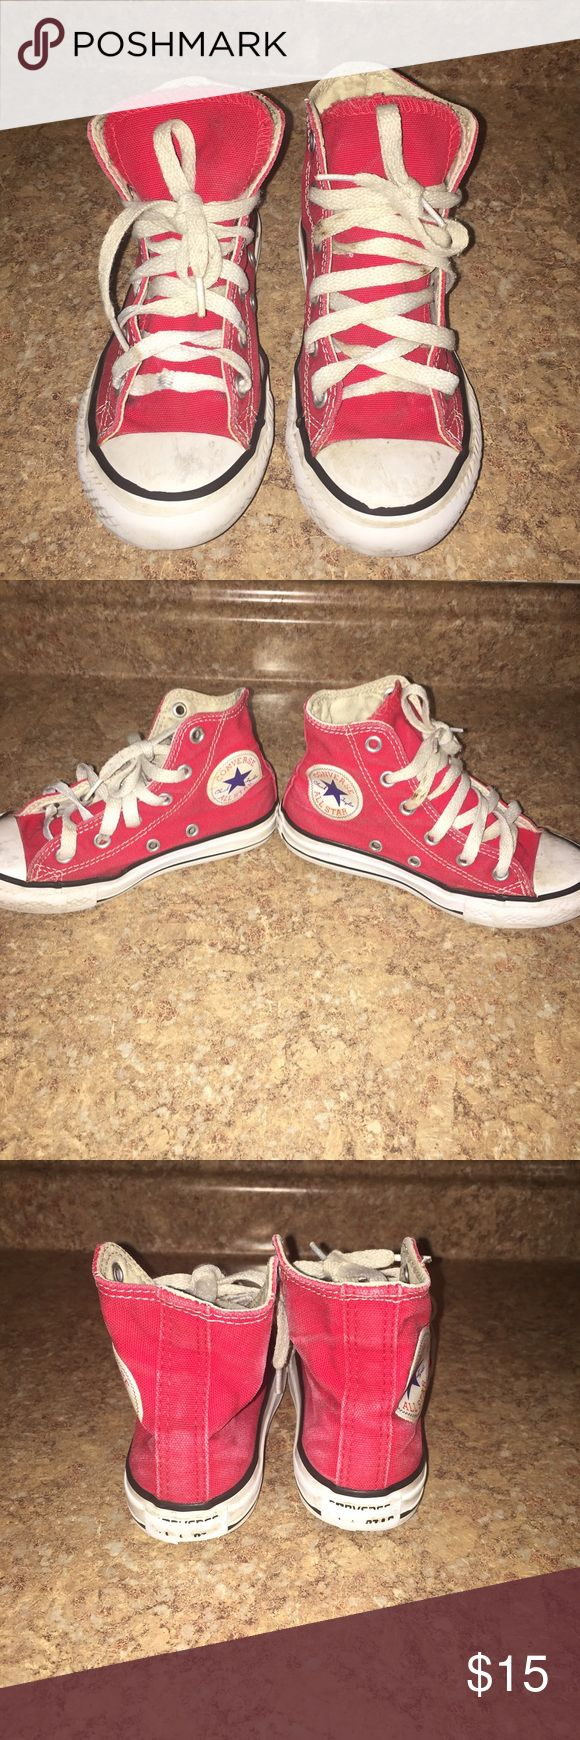 Kids Converse Kids size 11 converse. Used in red have been cleaned. Converse Shoes Sneakers